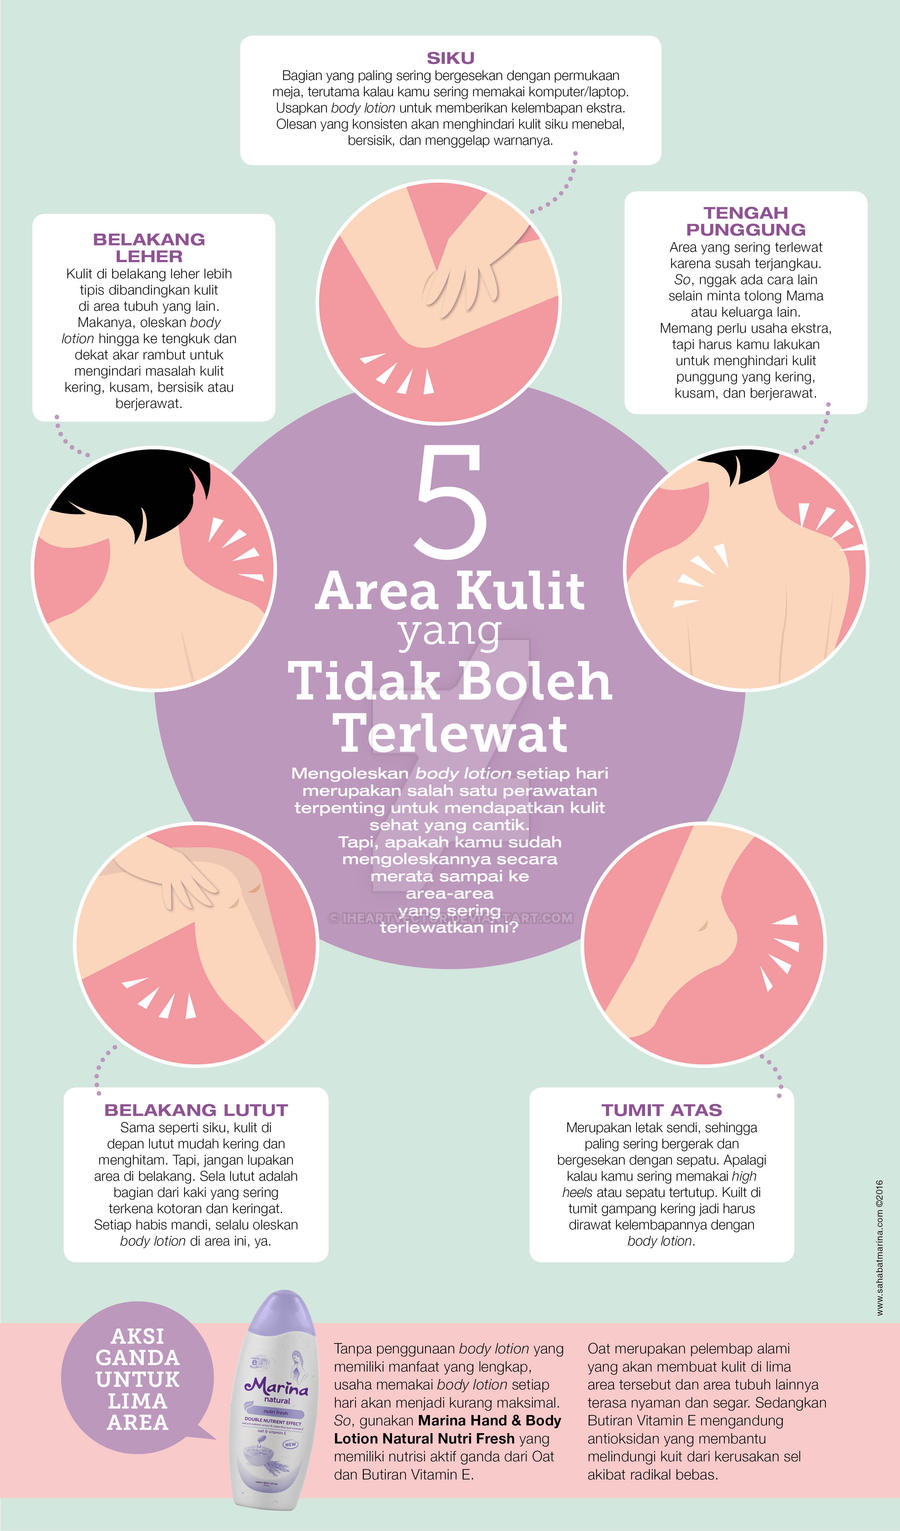 Infografis 5 area kulit by iheartvector on deviantart infografis 5 area kulit by iheartvector infografis 5 area kulit by iheartvector ccuart Image collections